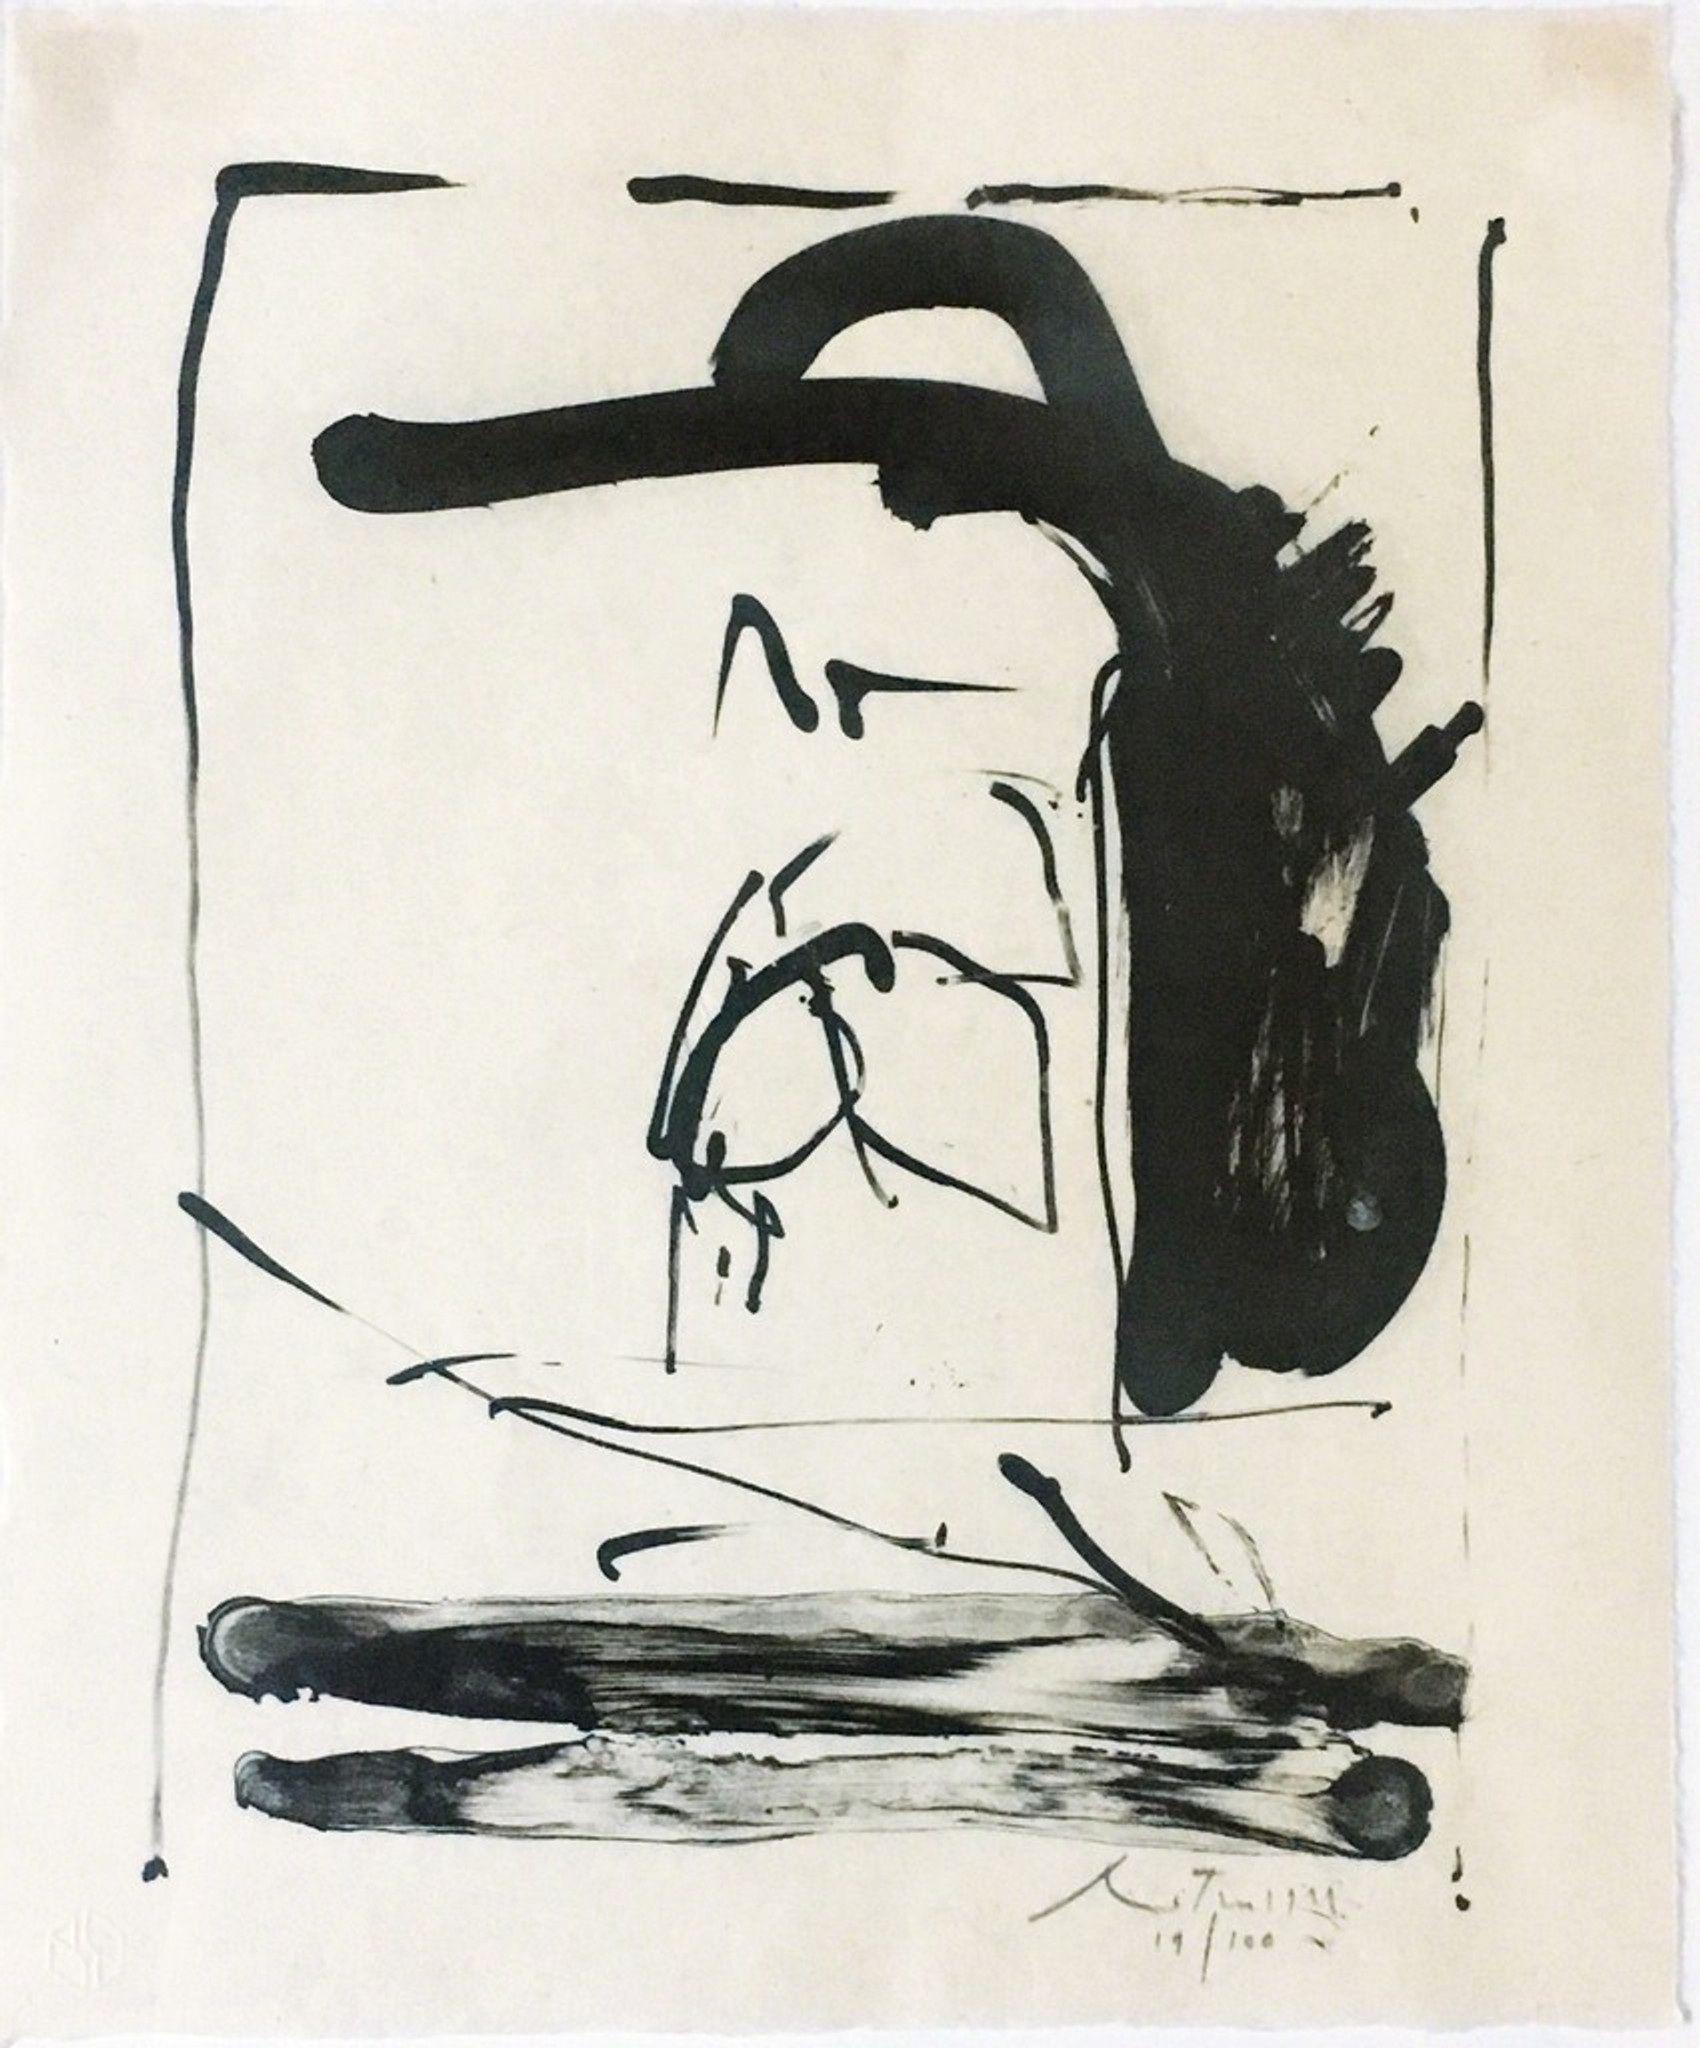 Robert Motherwell Apropos B 20 E B 283 1981 Lithograph On Kitikata Handmade Paper With Full Margins Publisher S Blind Stamp Hand Signed Numbered Framed Alpha 137 Gallery